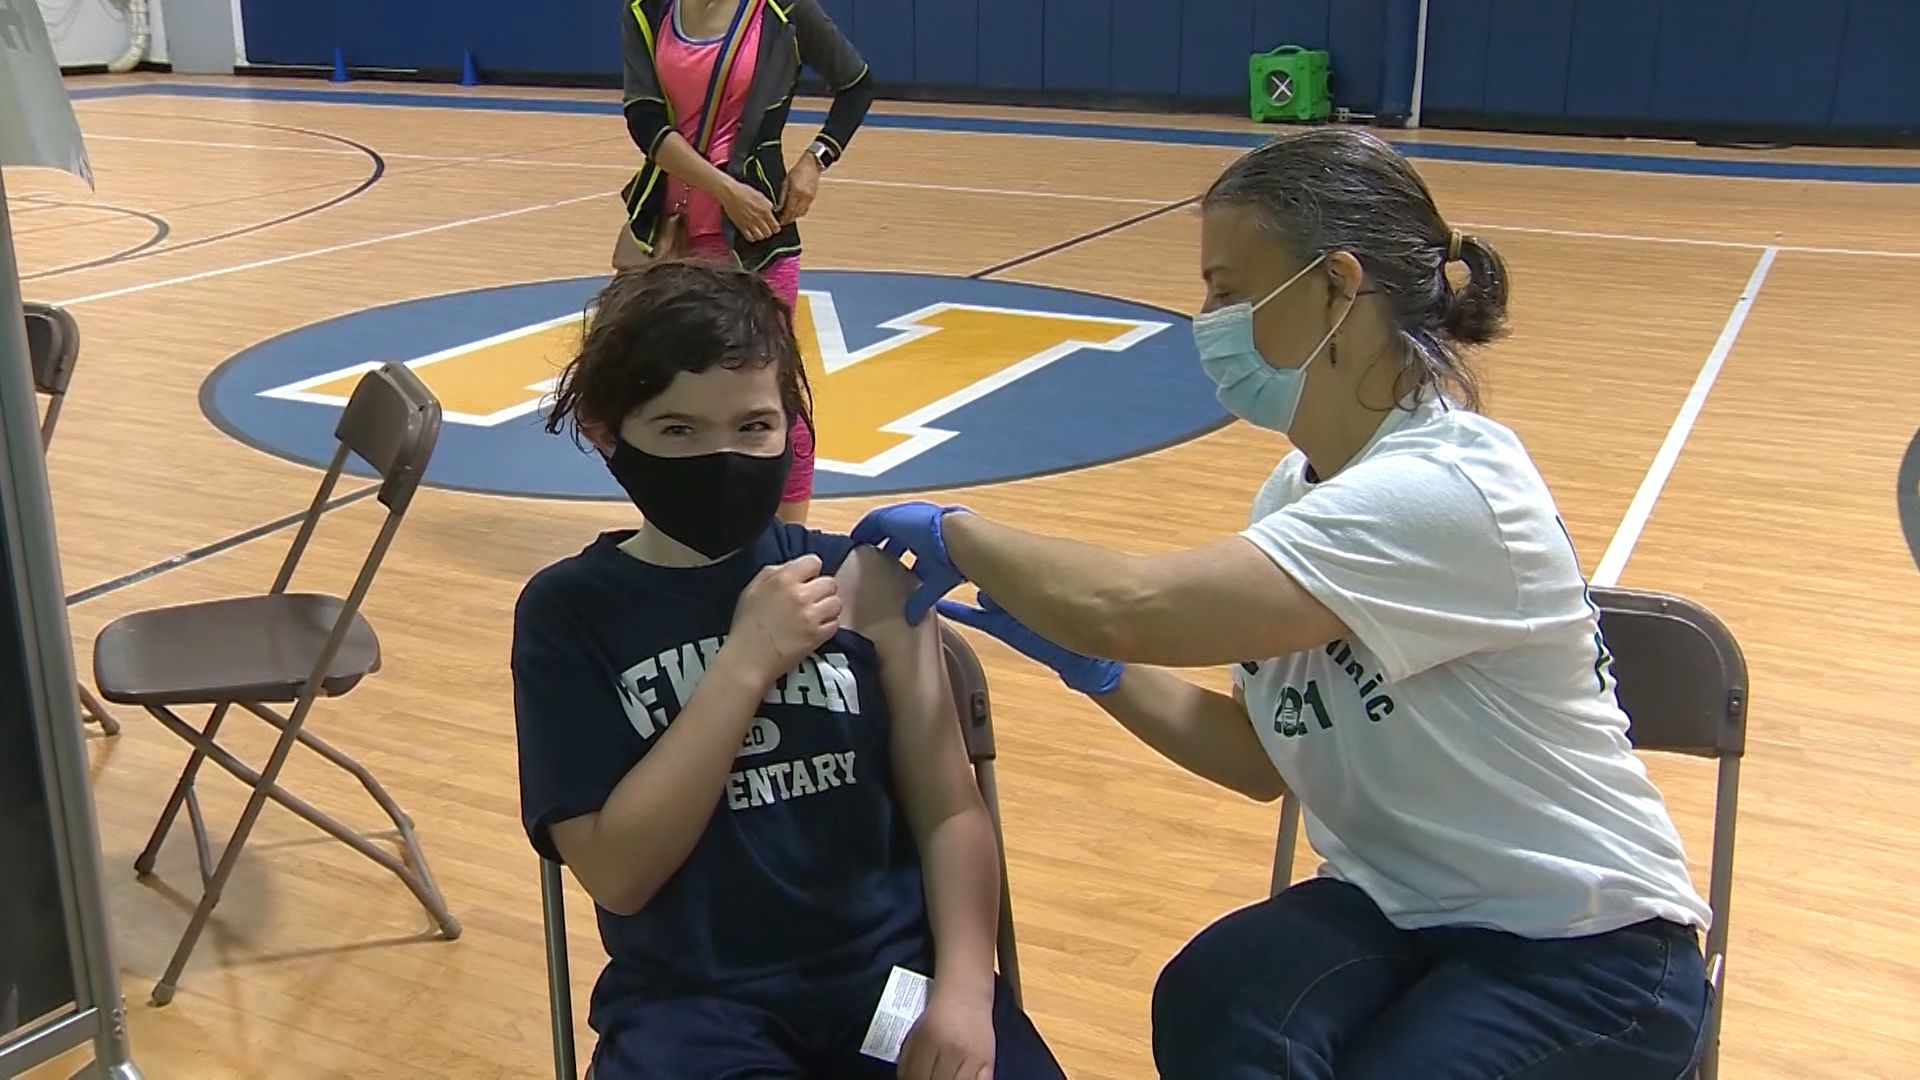 Needham offers weekend COVID-19 vaccination clinic for kids as young as 12